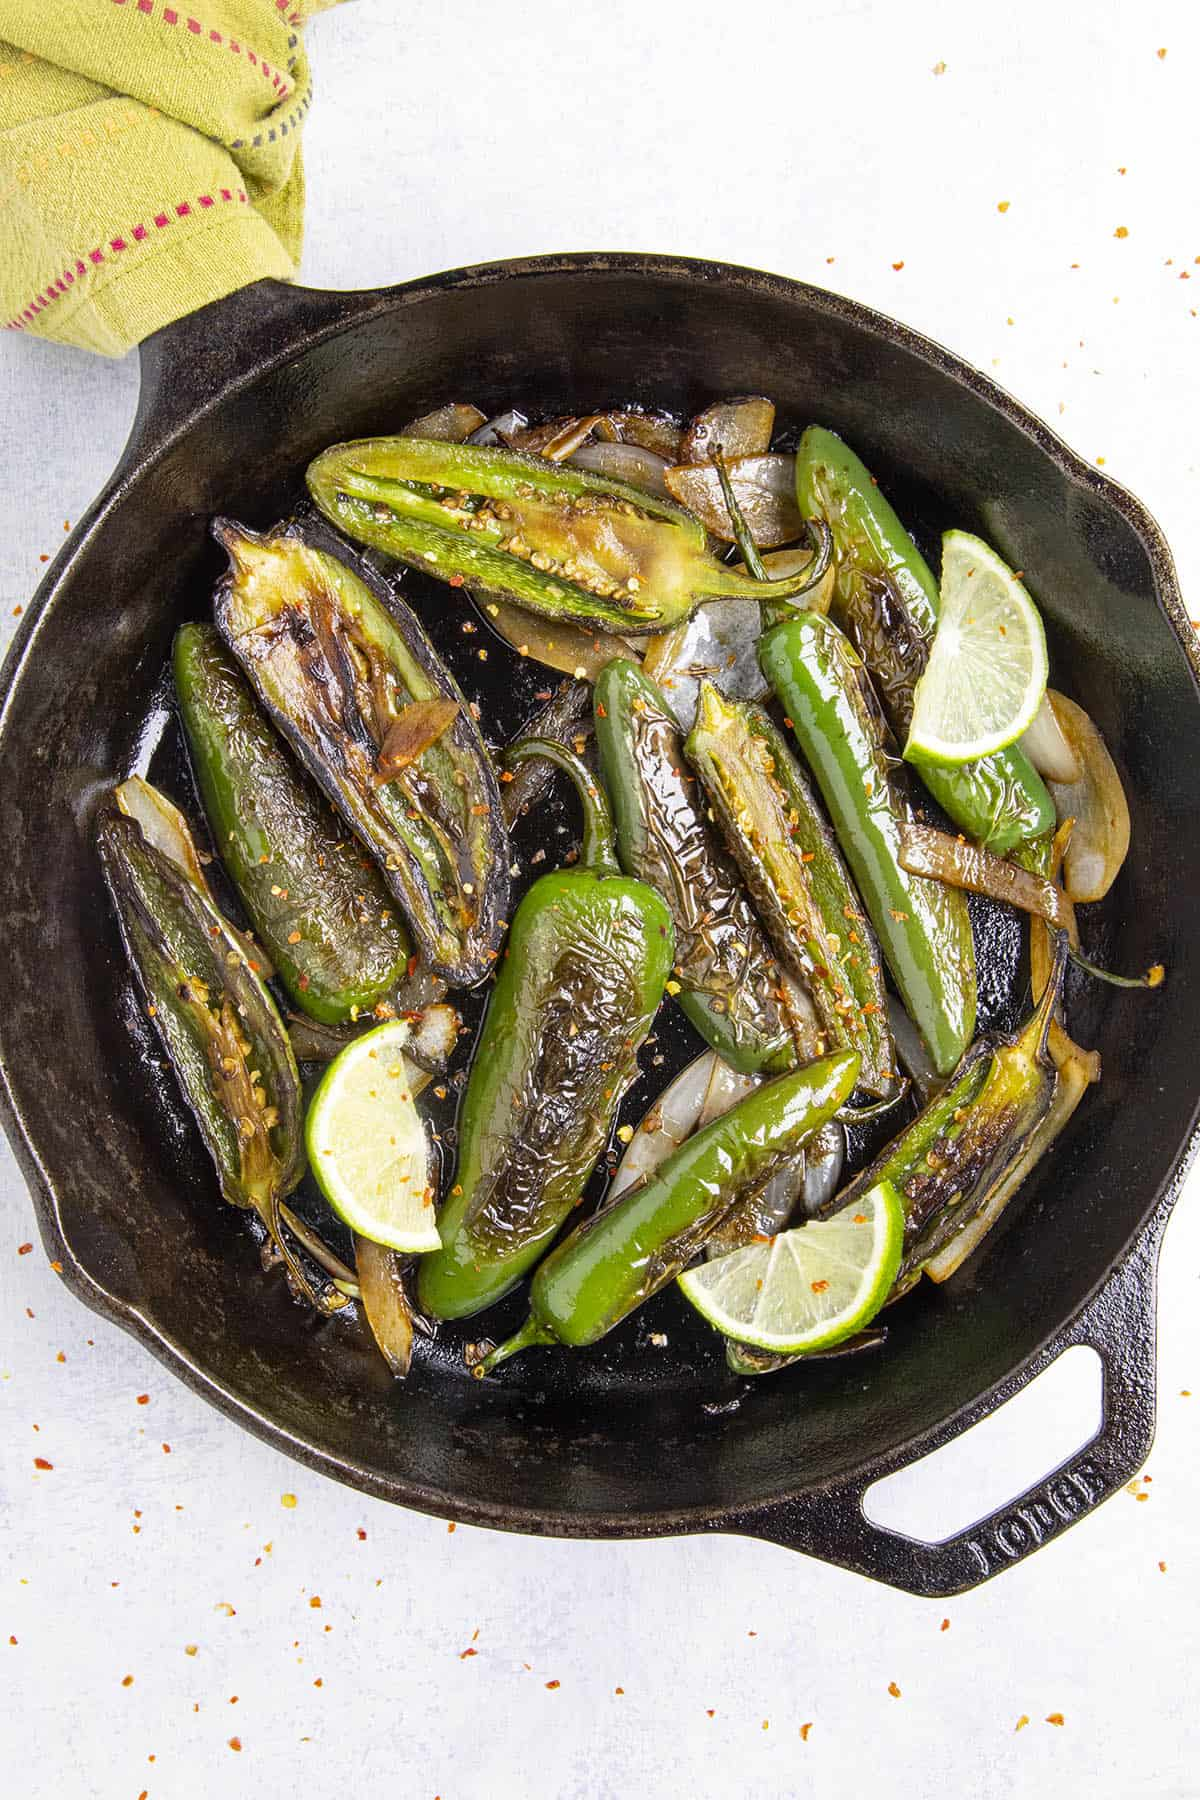 Chiles Toreados, or blistered chiles, just off the stove top